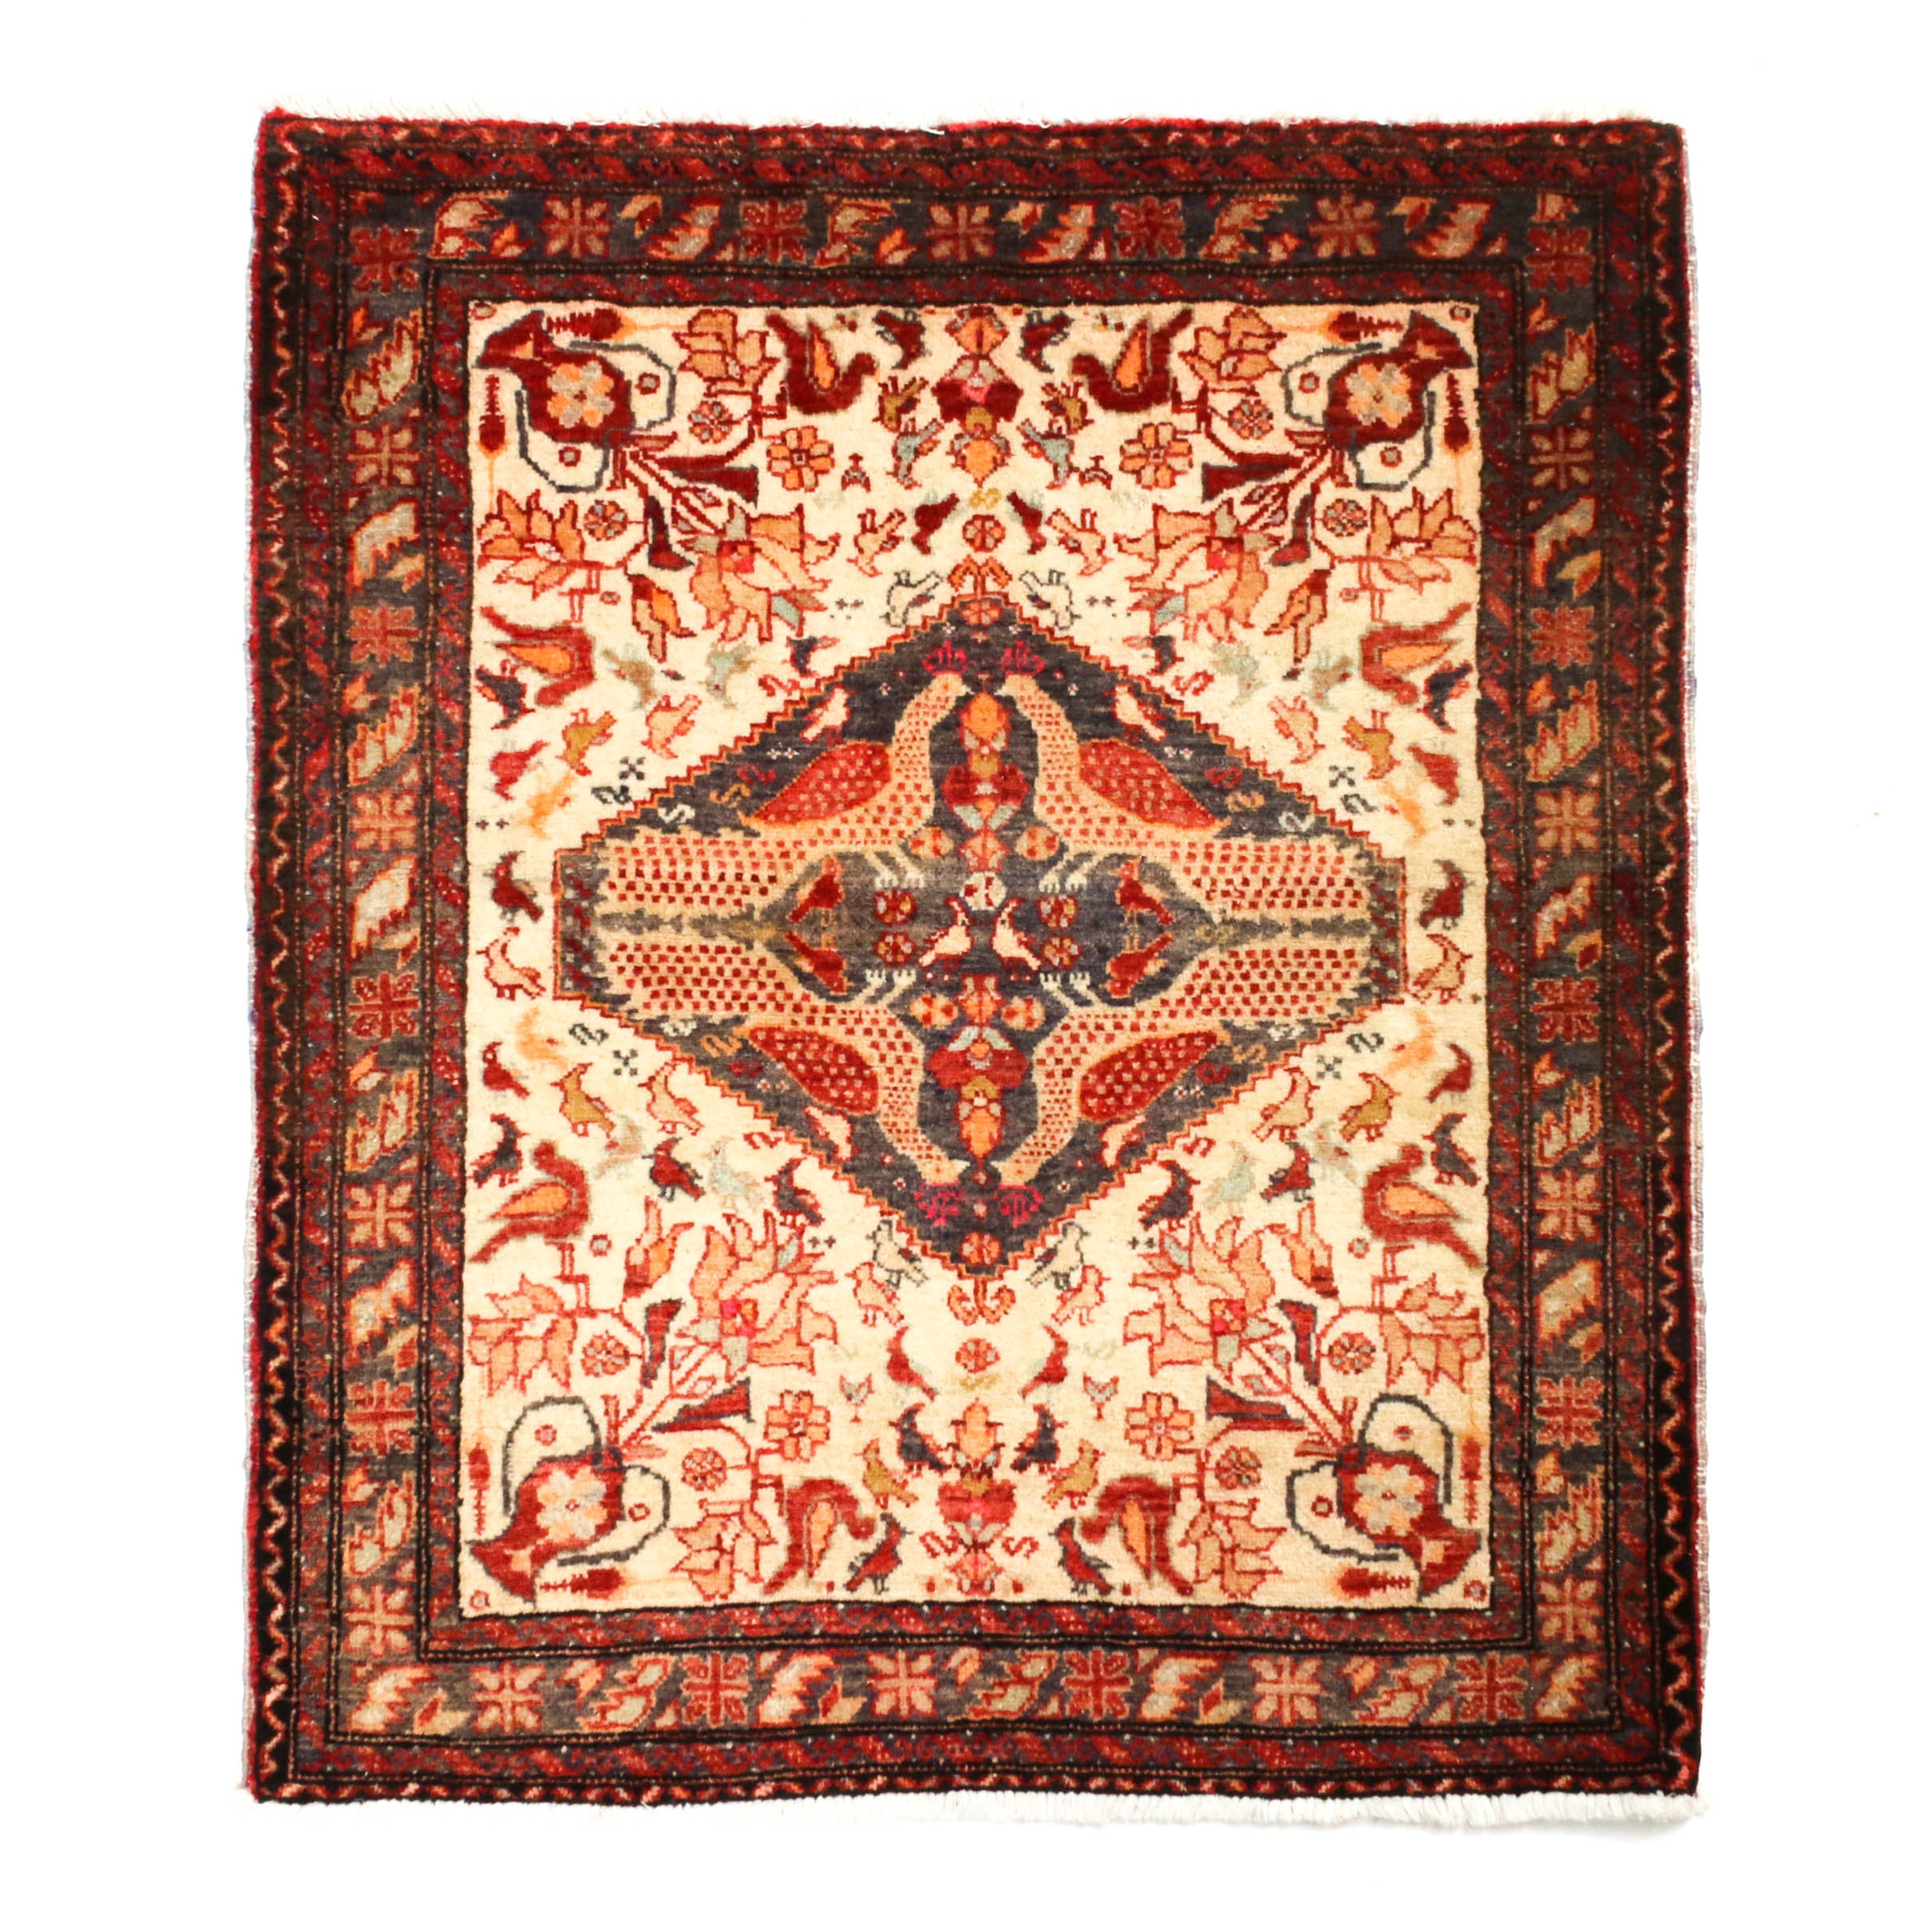 2'3 x 2'10 Hand-Knotted Northwest Persian Pictorial Wool Rug, Circa 1920